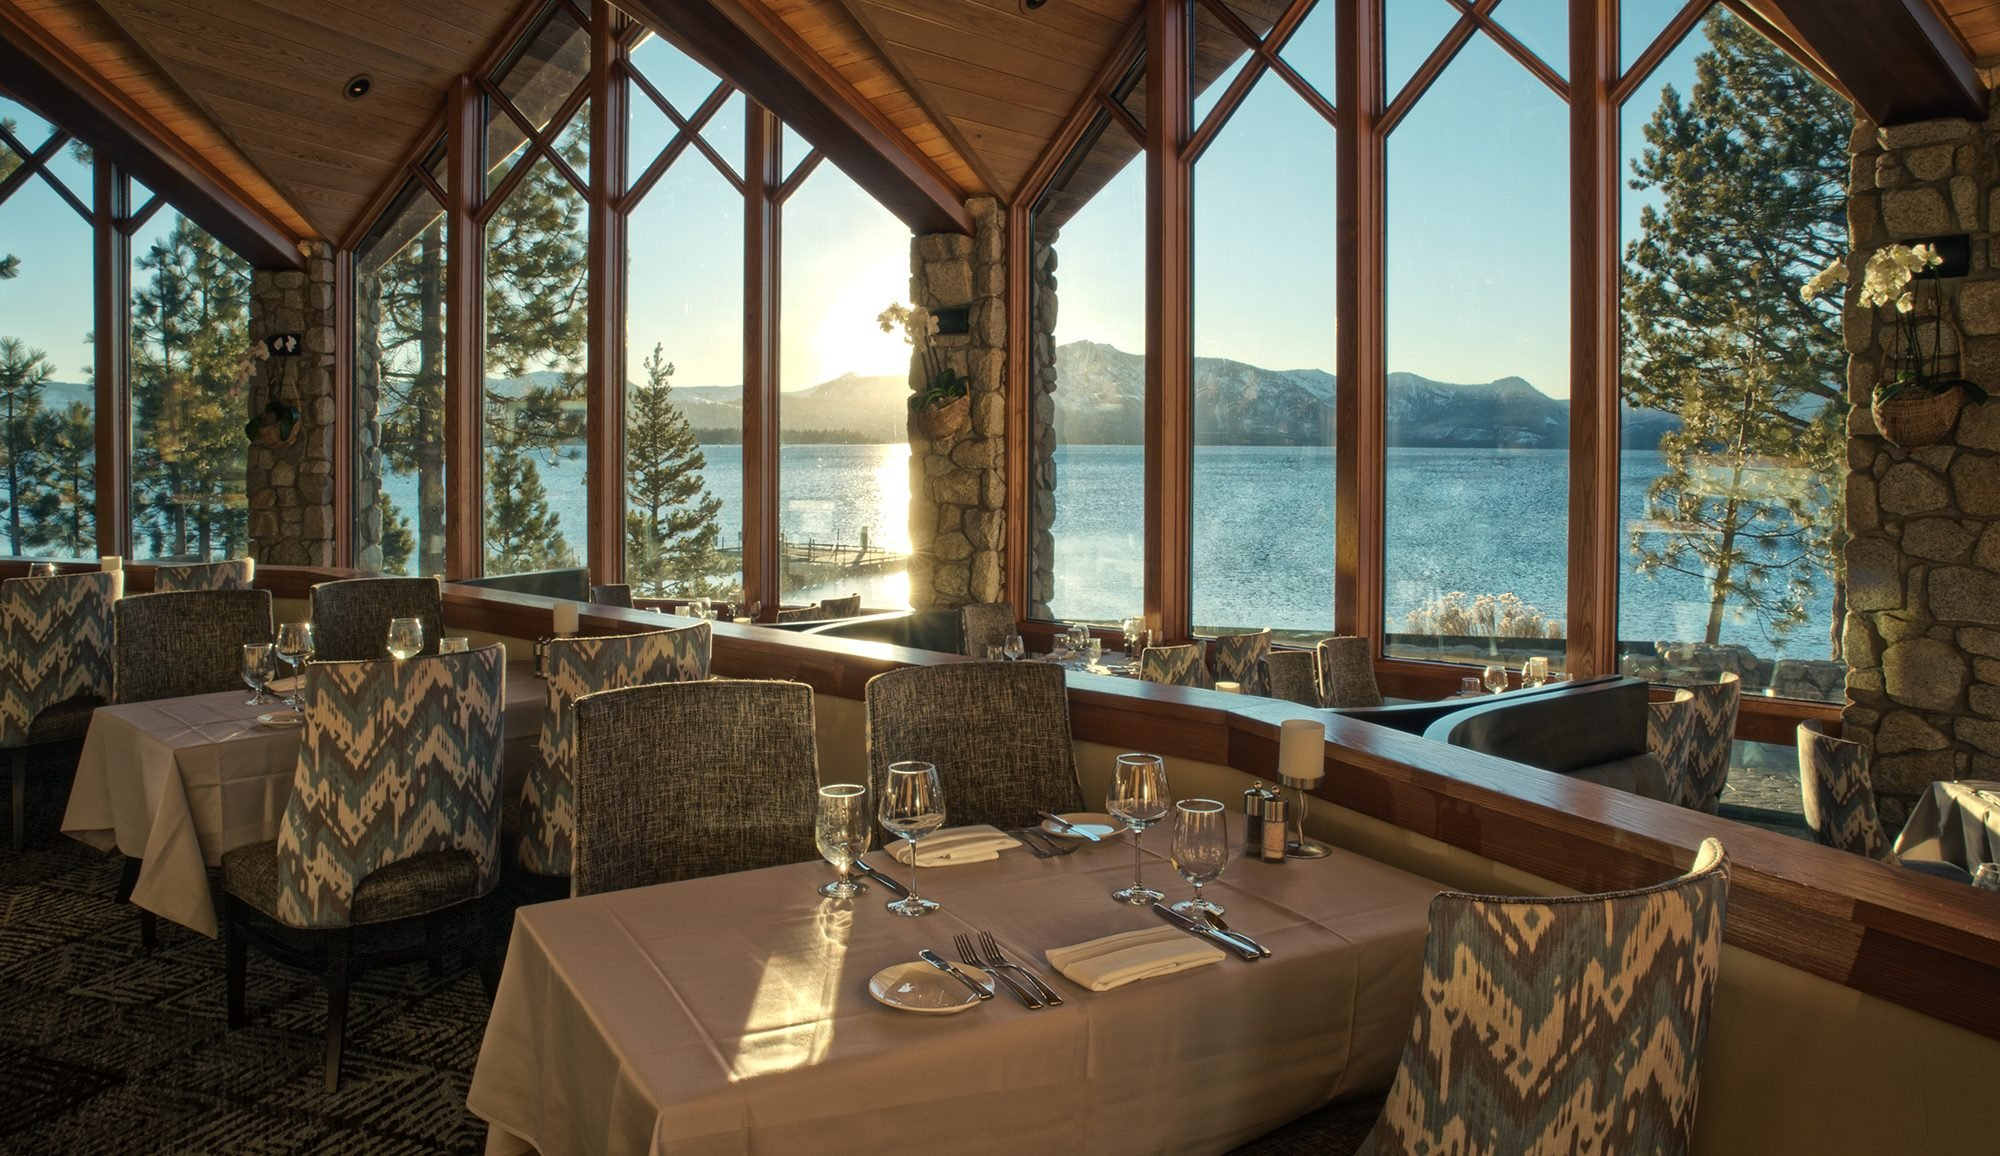 Lake Tahoe, Edgewood Restaurant, Nevada